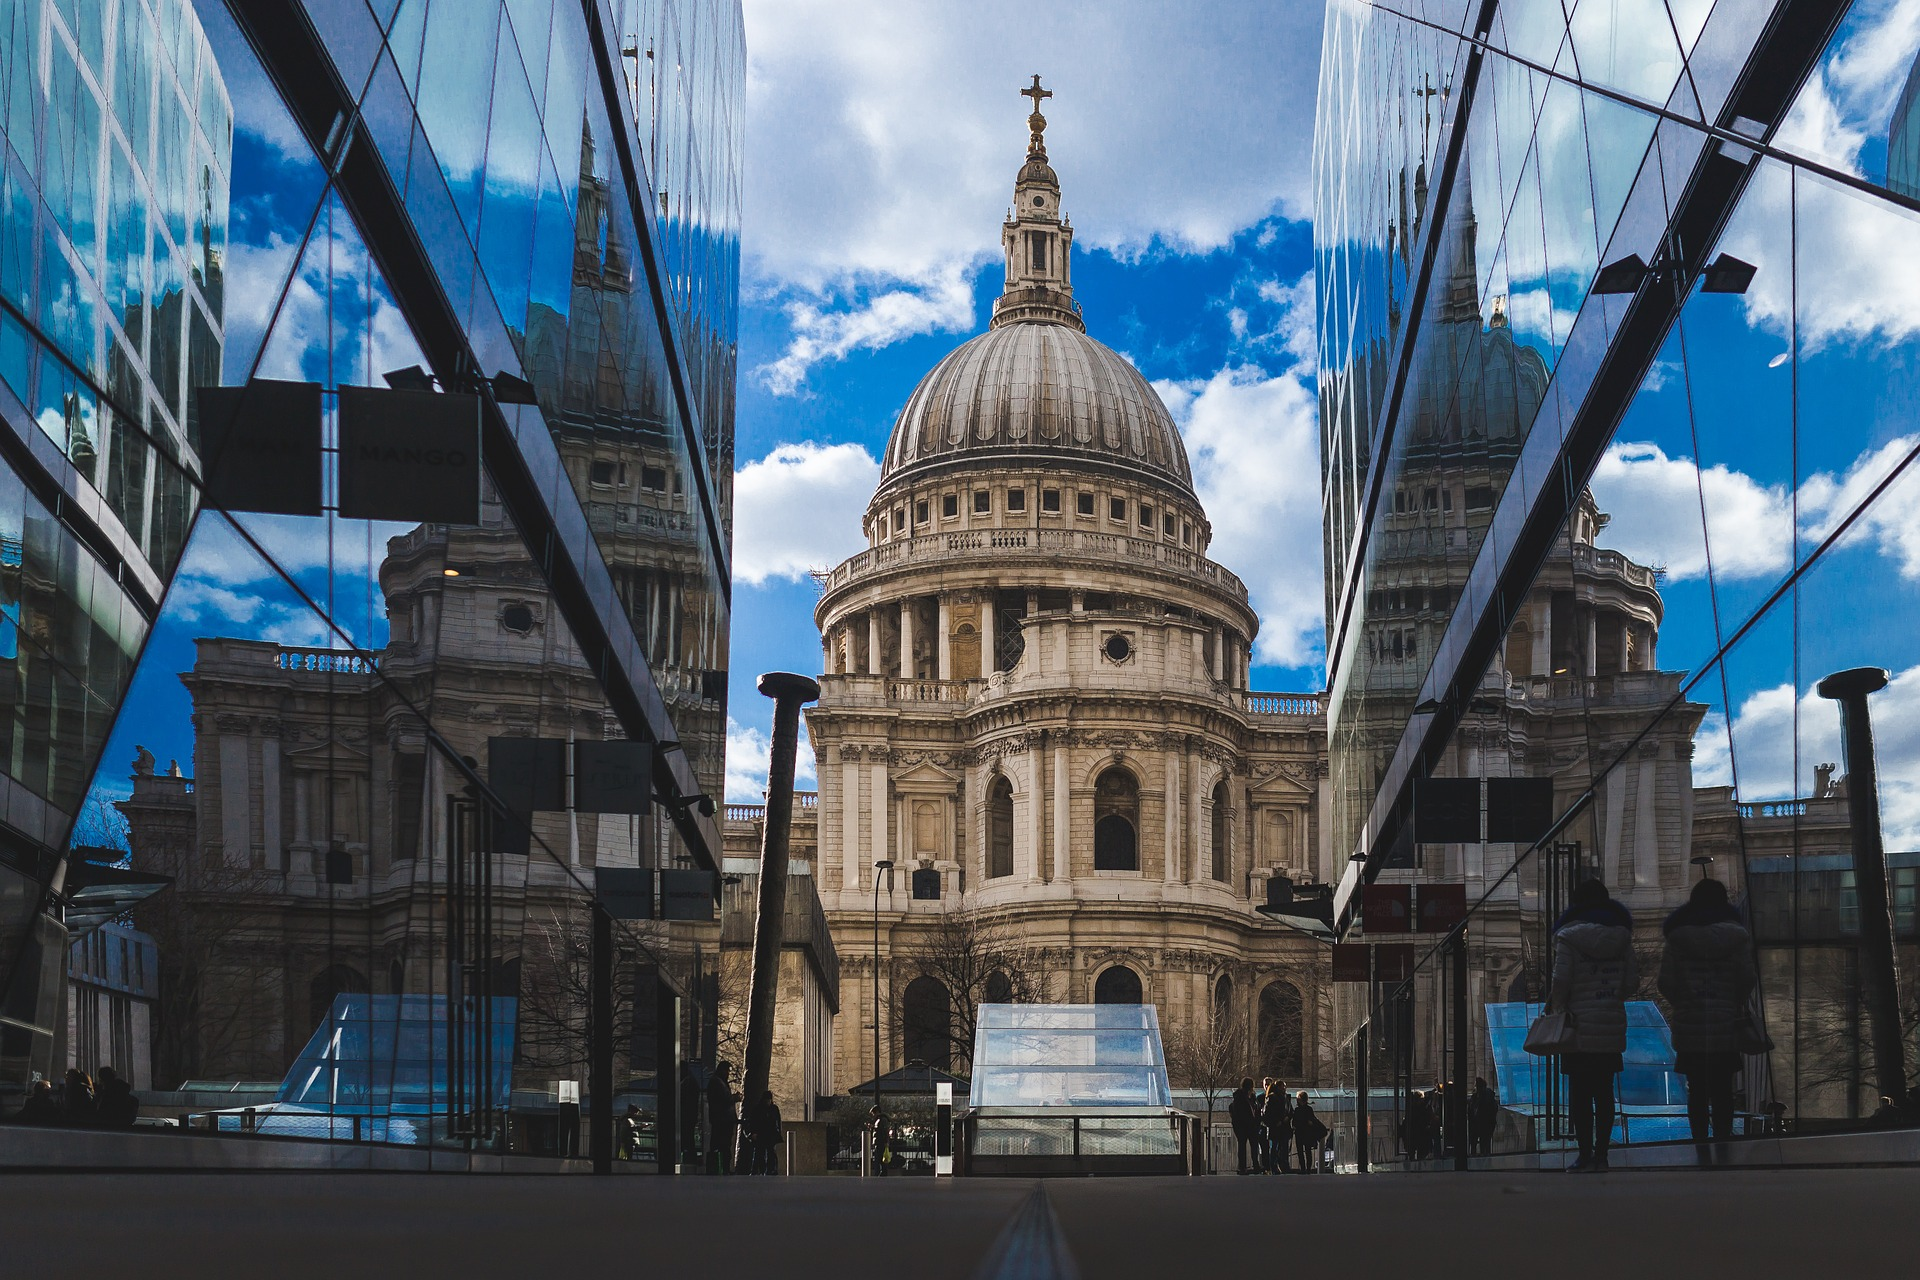 st-pauls-cathedral-768778_1920.jpg?1567518463